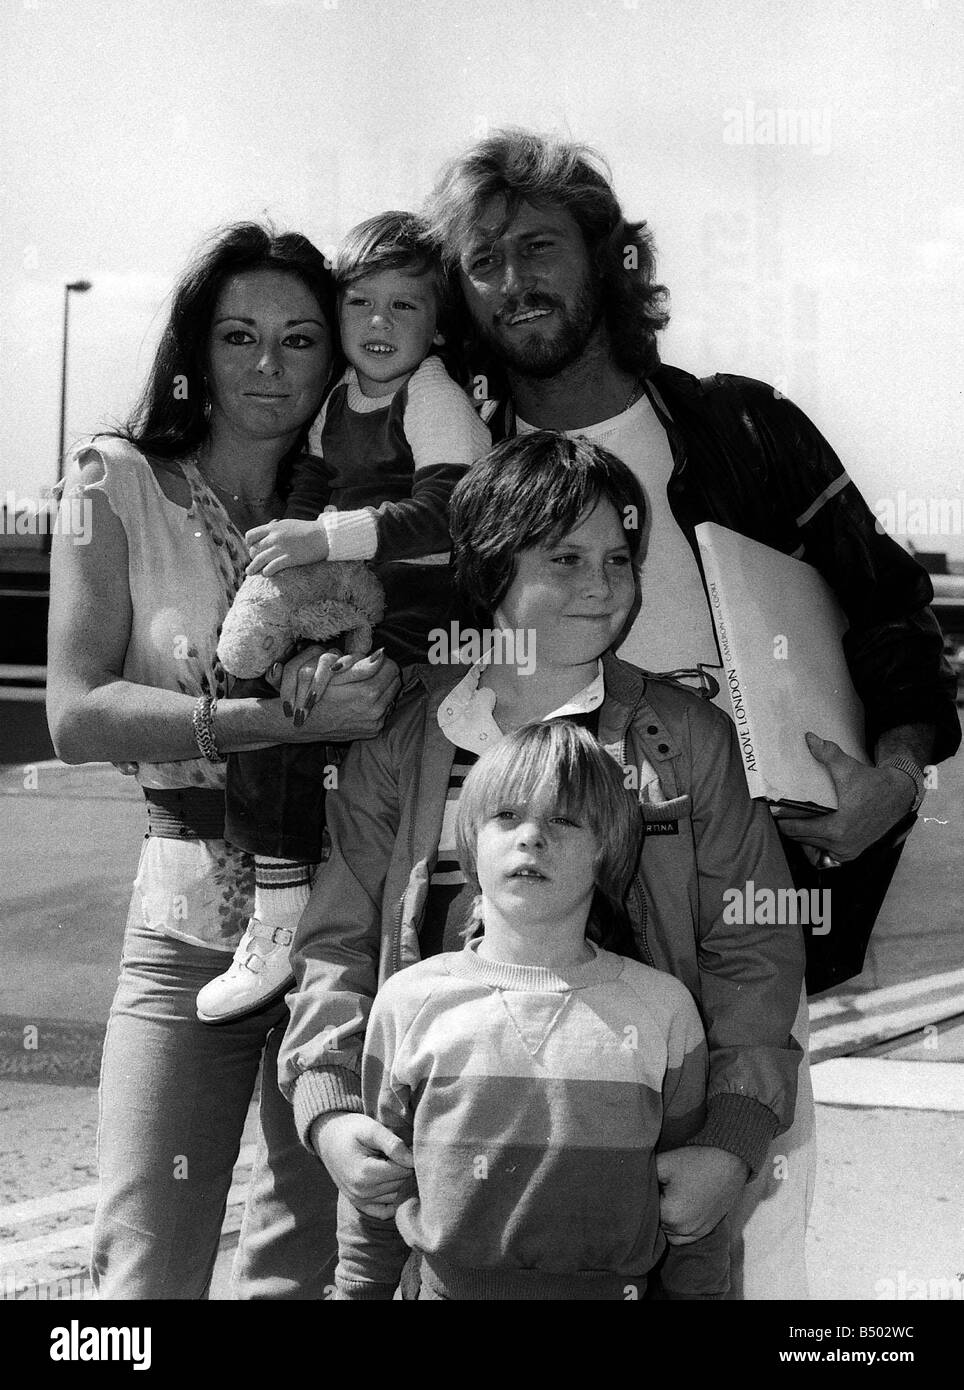 Bee Gees Singer Barry Gibb And Family At Heathrow Airport Stock Photo Royalty Free Image